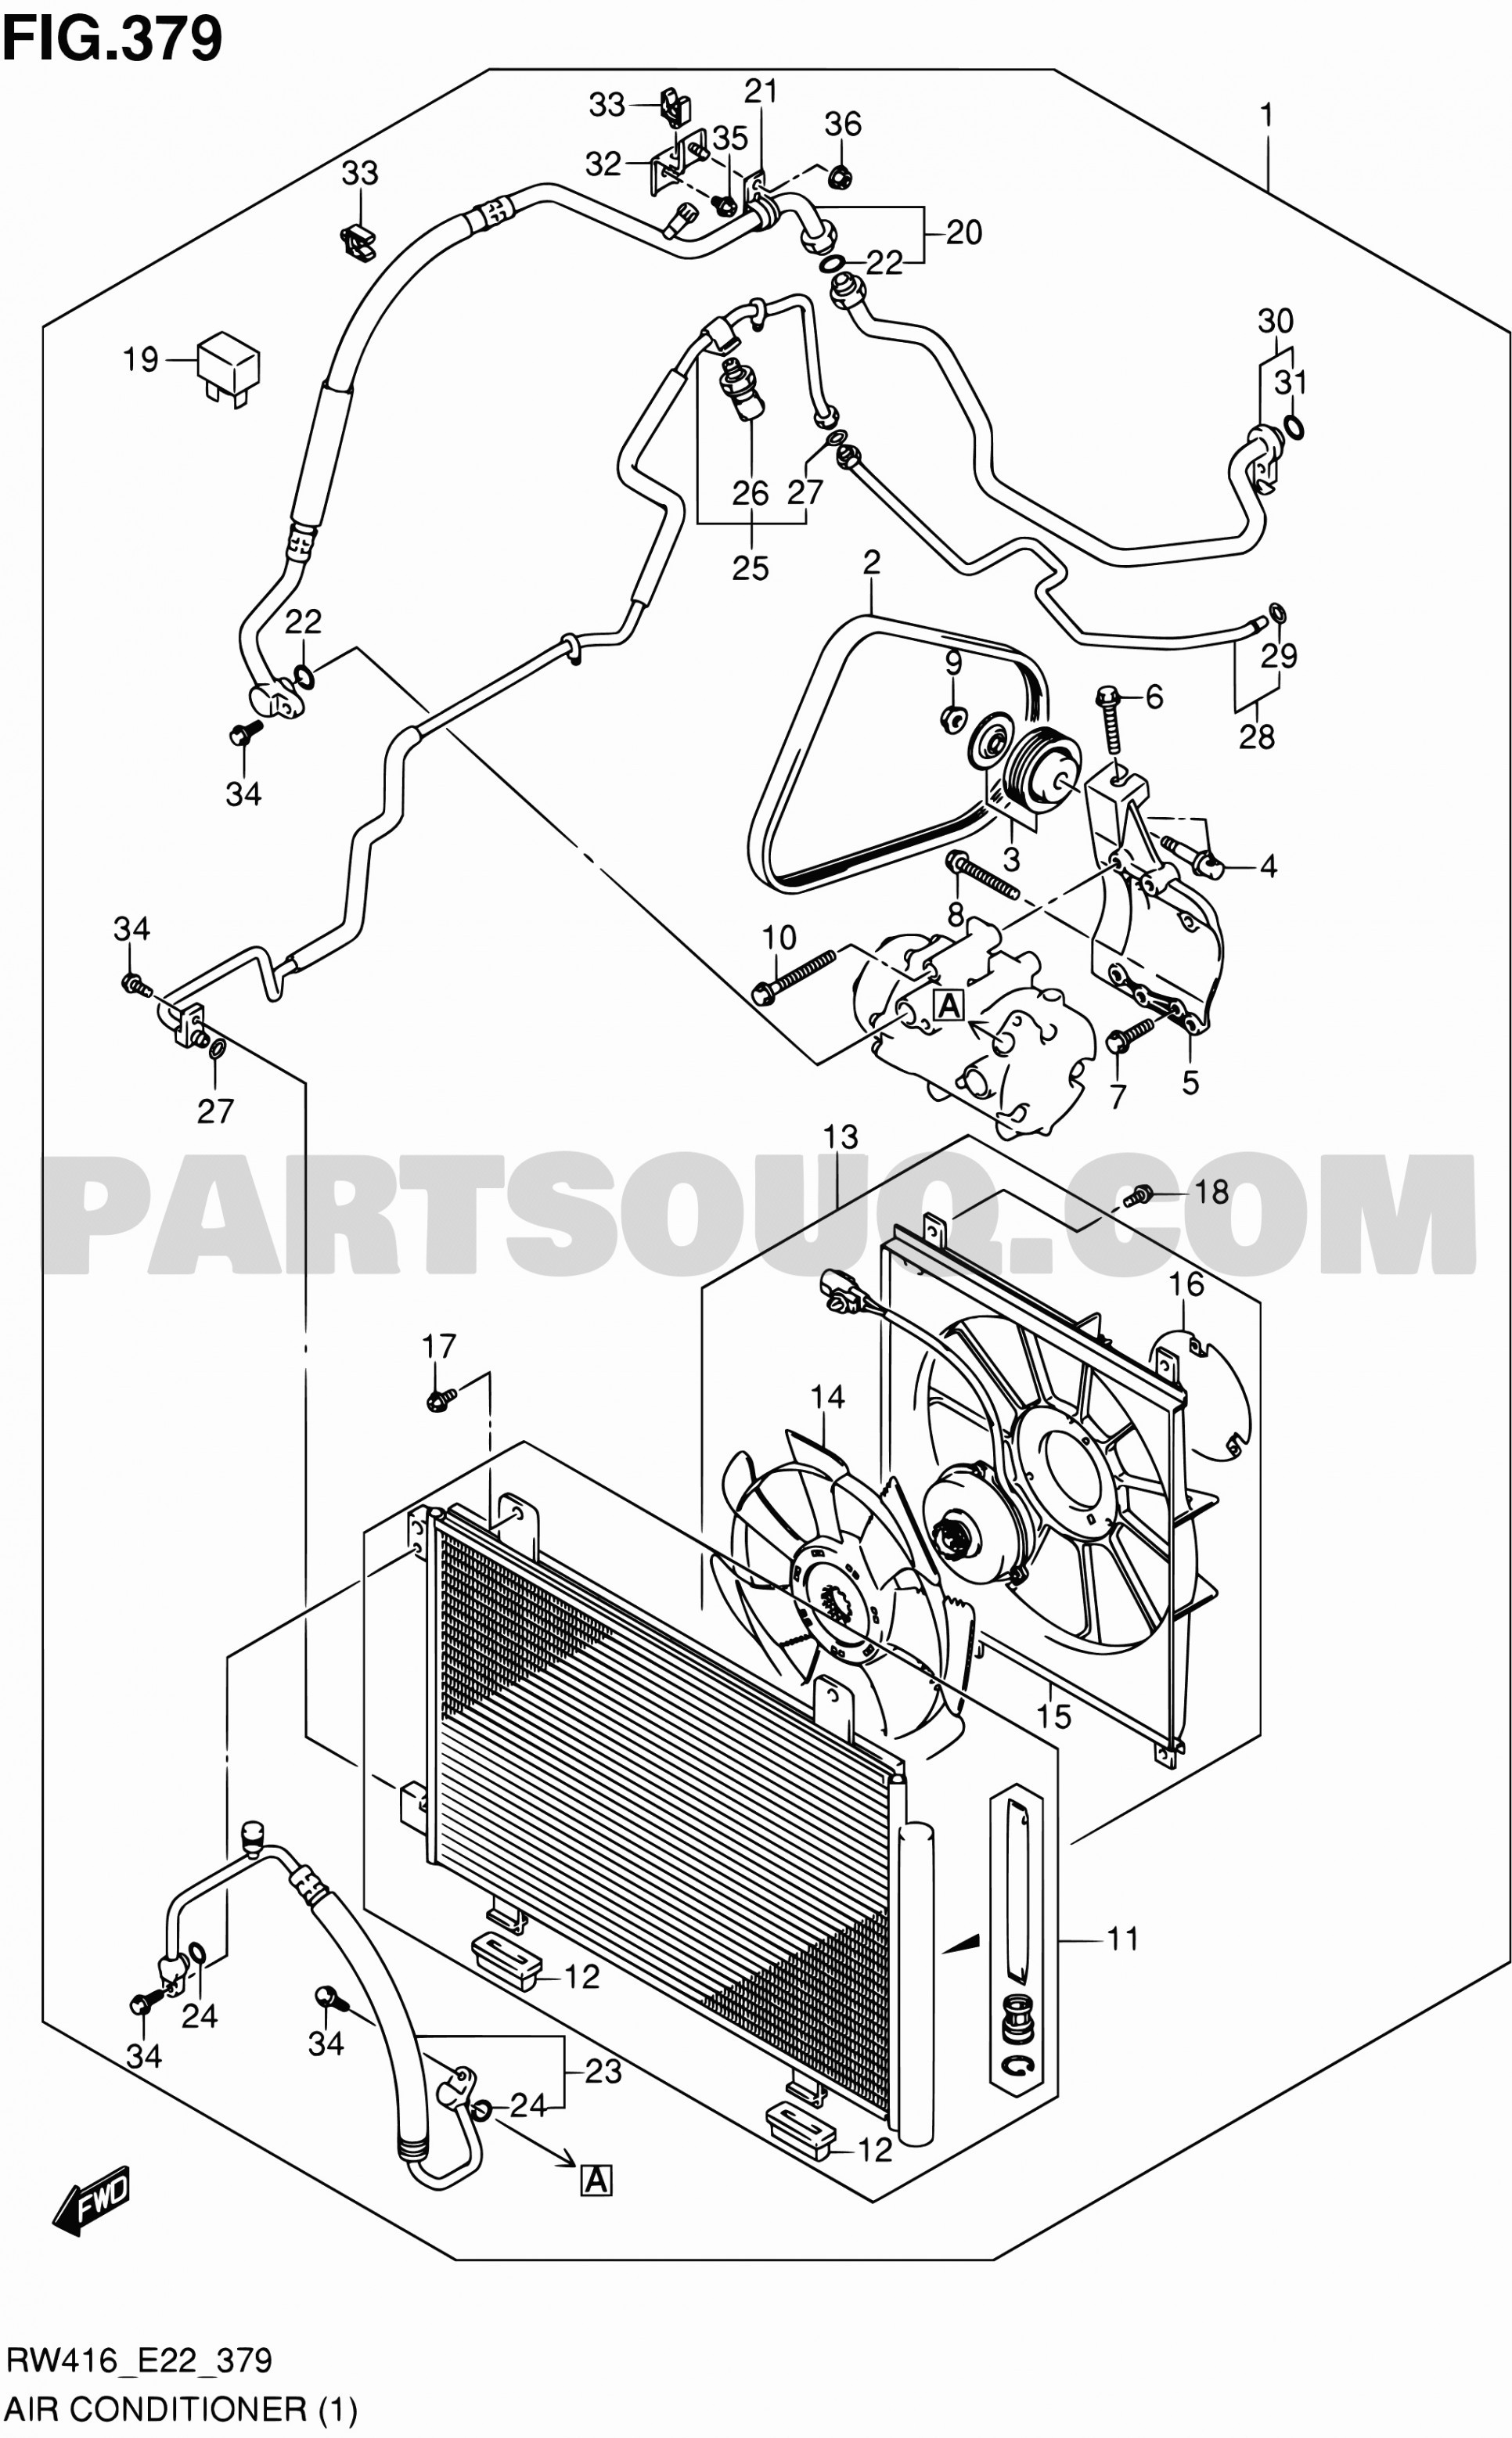 Mercedes Benz Engine Diagram Mercedes Benz Parts Diagram – Diagram Car Best Car Parts and Of Mercedes Benz Engine Diagram Mercedes Benz Cruise Control Wiring Diagram Data Wiring Diagrams •